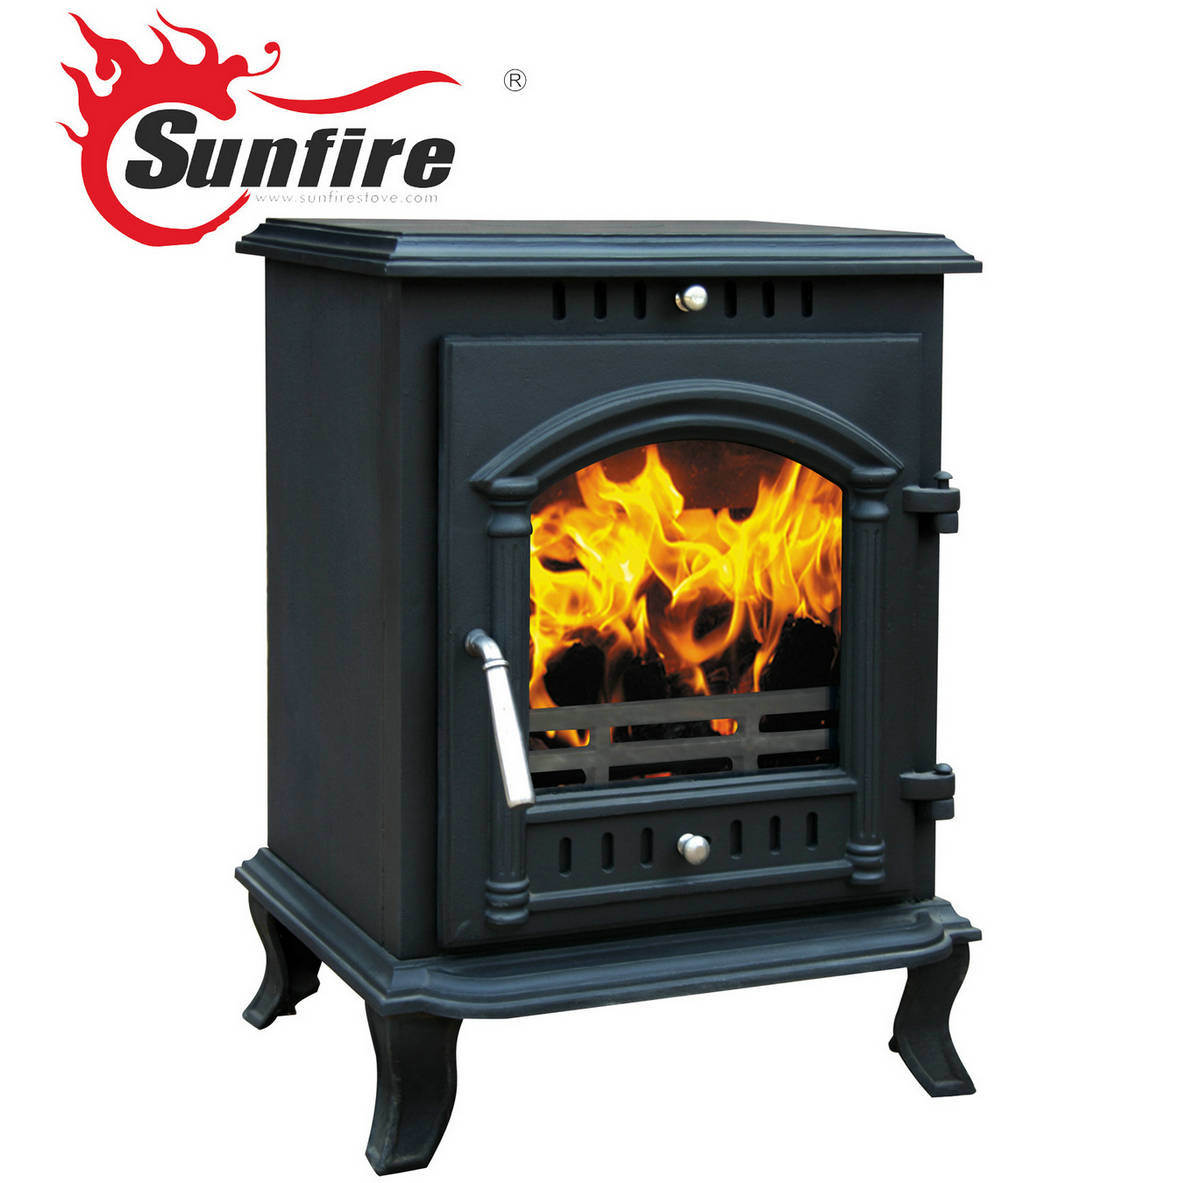 China wood burner heater eco friendly stove bh001 for Eco friendly heaters